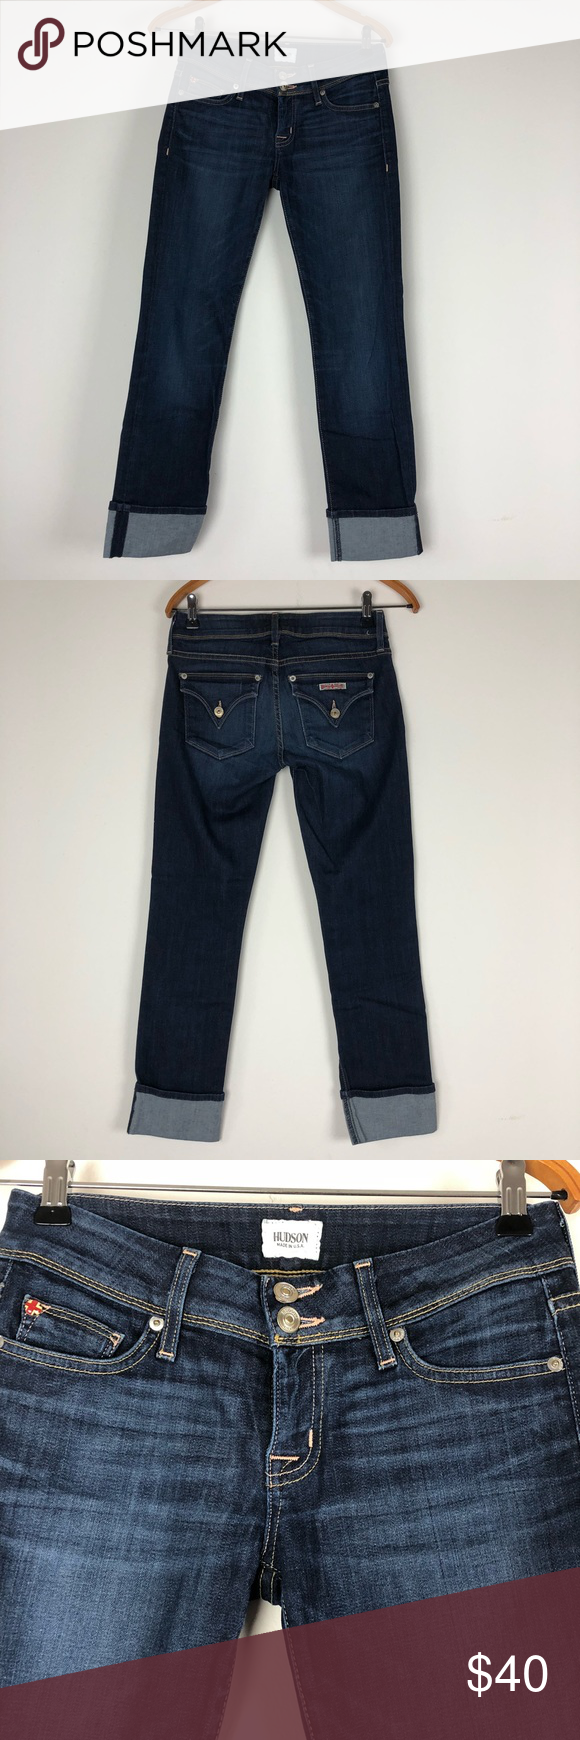 621eb248316 No holes or stains. Waist 14.5 Long 35 Inseam 27.5 143H Hudson Jeans Jeans  Straight Leg